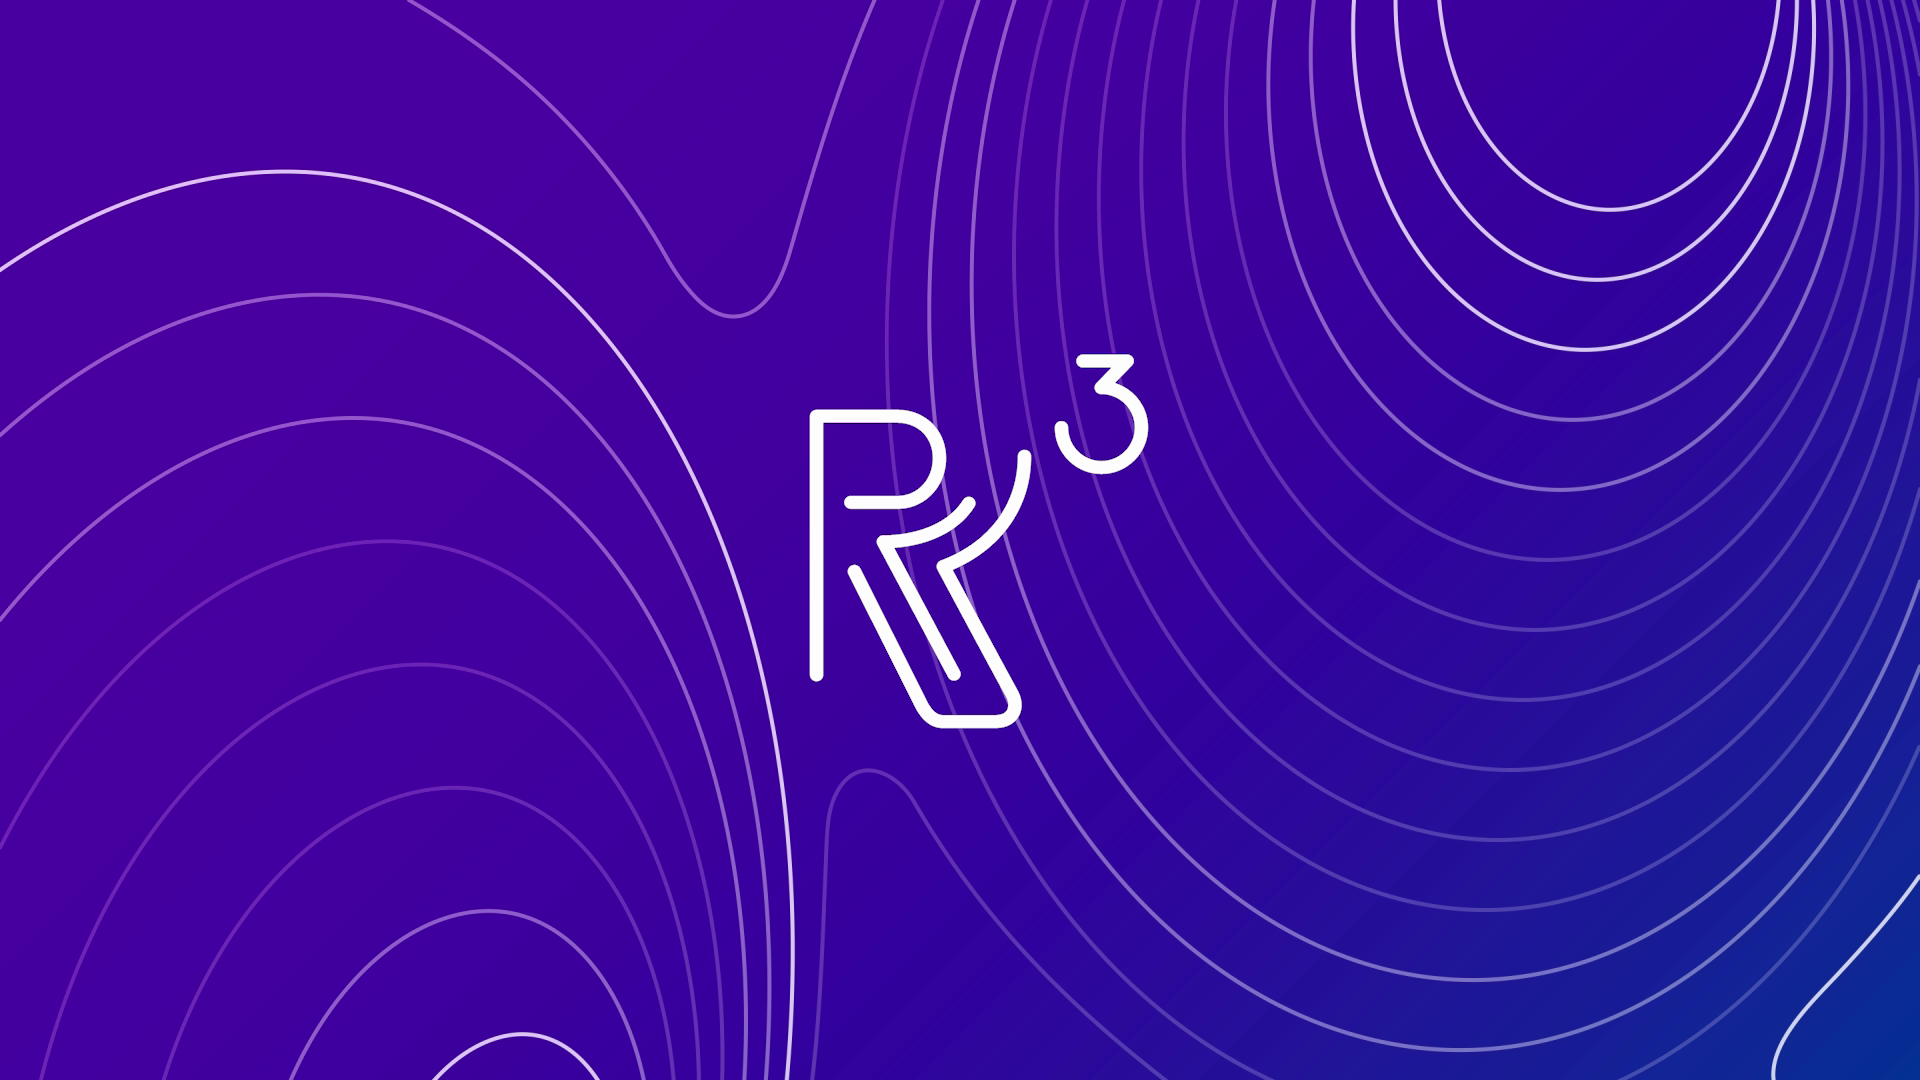 R3 Printing Layer Lines Illustration - With Logo.png